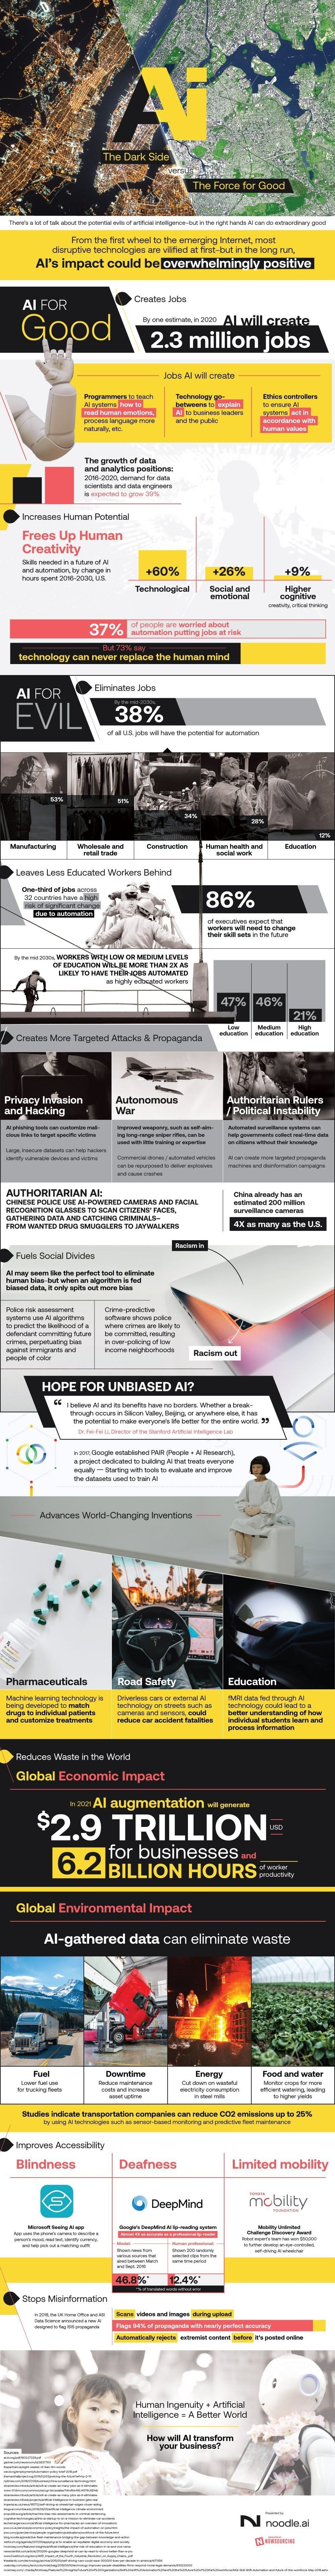 The Future is Now: AI for Evil vs AI for Good #infographic